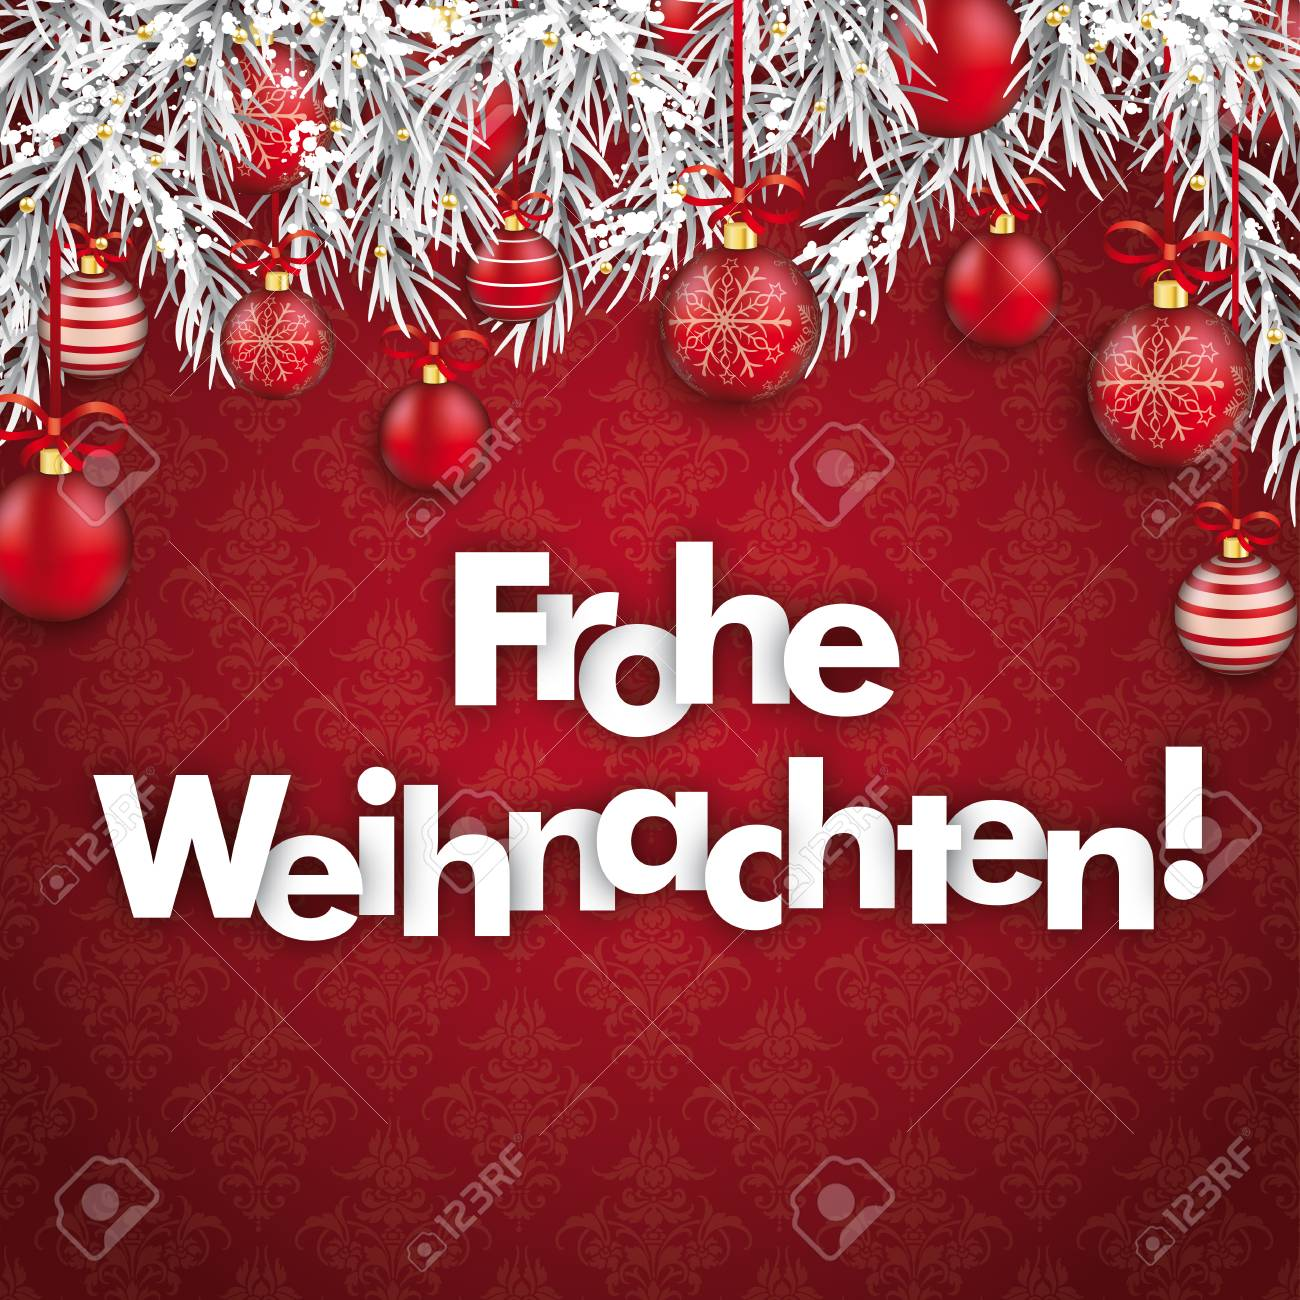 Frohe Weihnachten German Text Frohe Weihnachten Translate Merry Christmas With